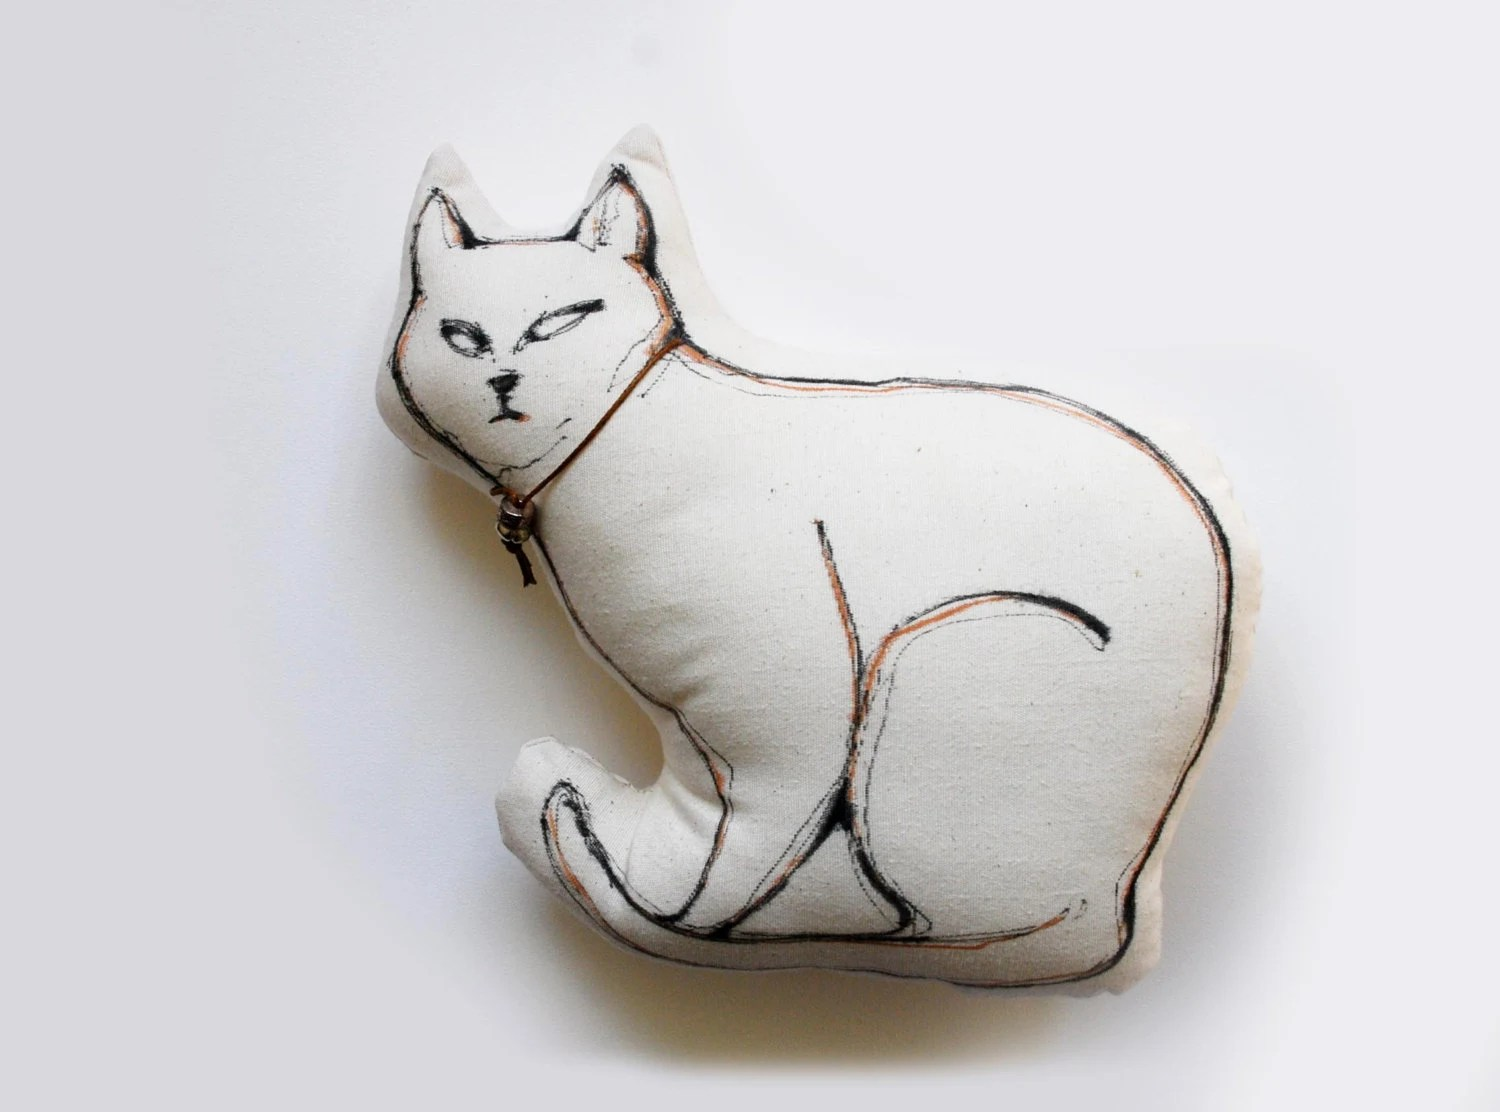 Cat Pillow - Limited edition - Cat drawing on fabric - Two available - White/ black ink pen special for fabric aplication - SimpleArtStudio